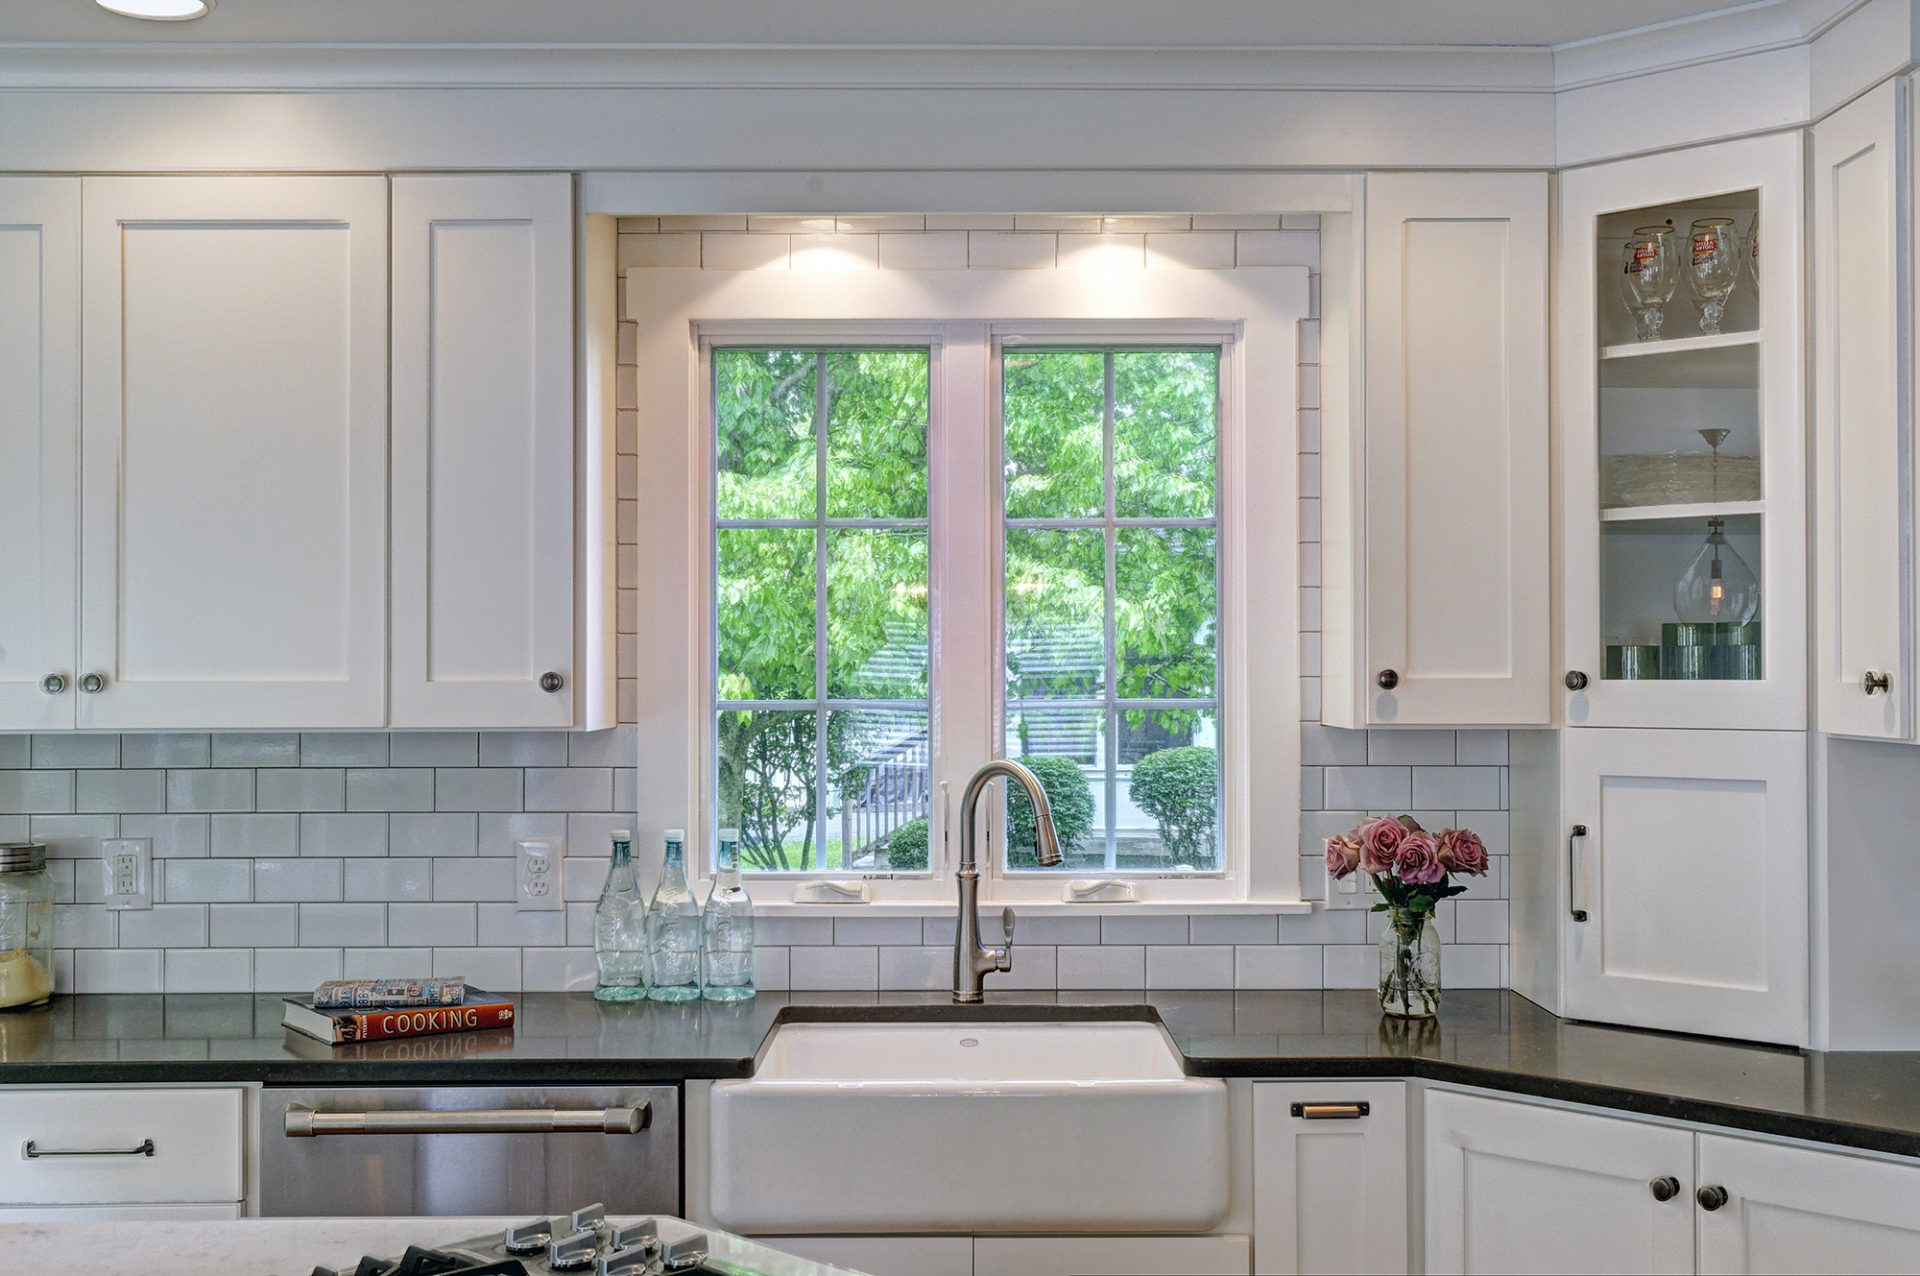 Kitchen remodel, room addition, Upper Arlington, Dave Fox, Remodel, white, subway tile, pendant lighting, farmhouse sink, wine racks, coffee bar